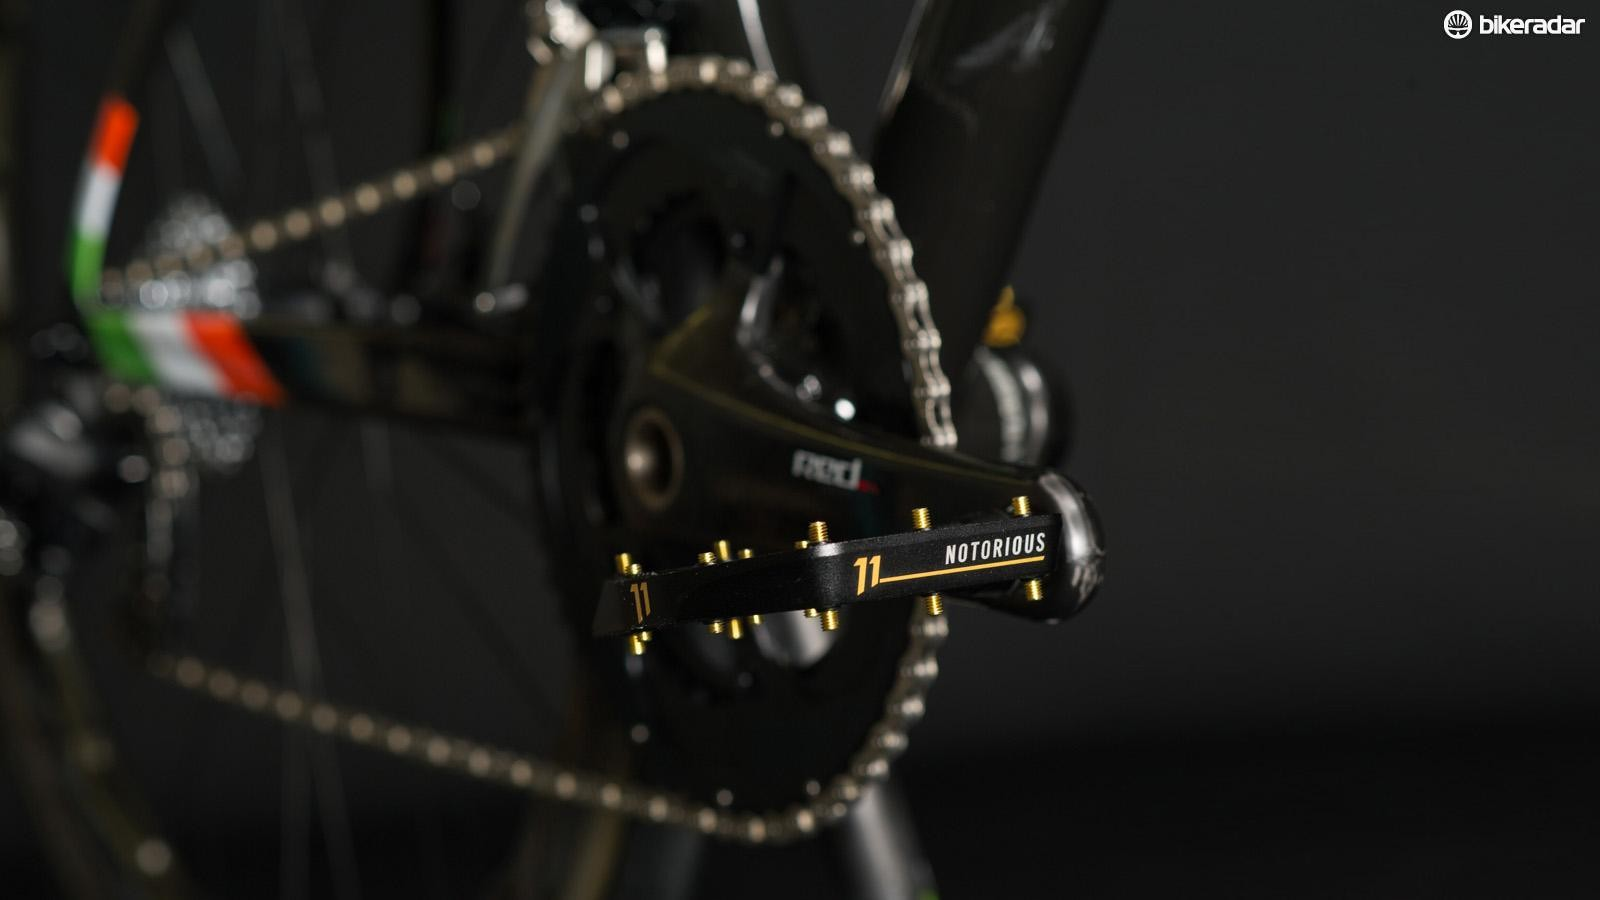 The Crank Brothers flat pedals are custom made to match, McGregor can't use clipless pedals because of an old ACL injury